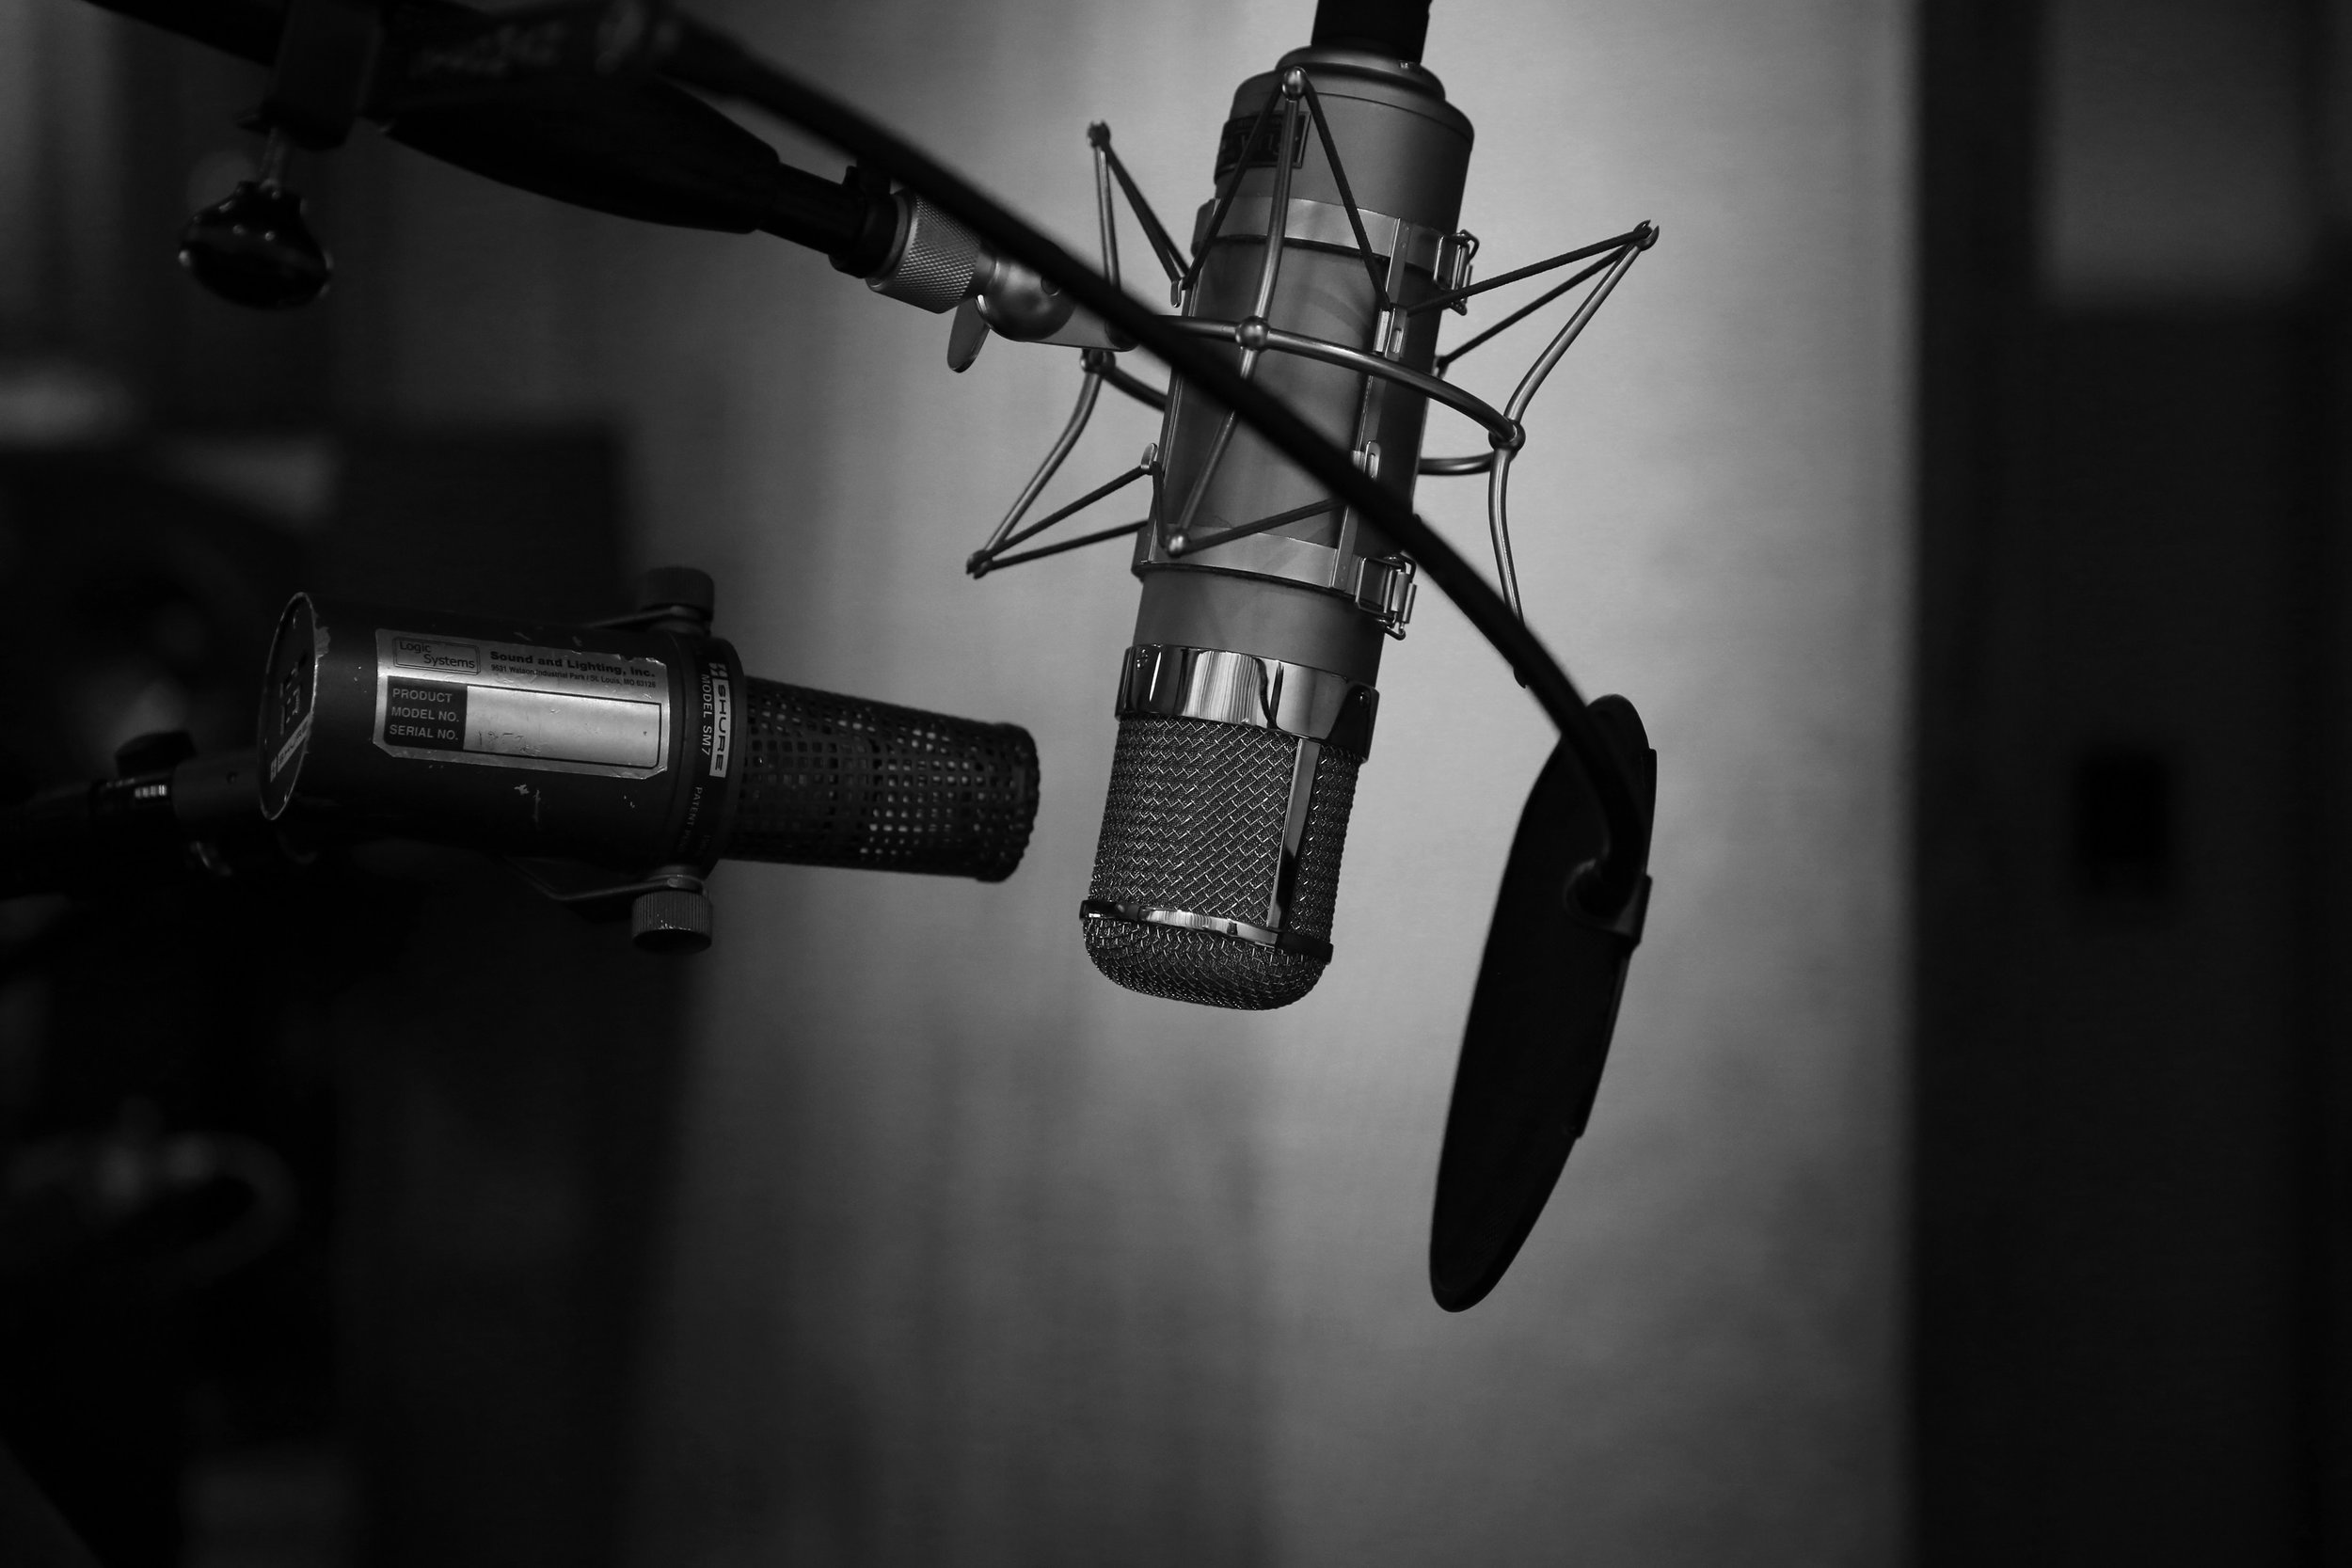 Voice-Over - Our voice-over service can improve your project through narration and voice character.